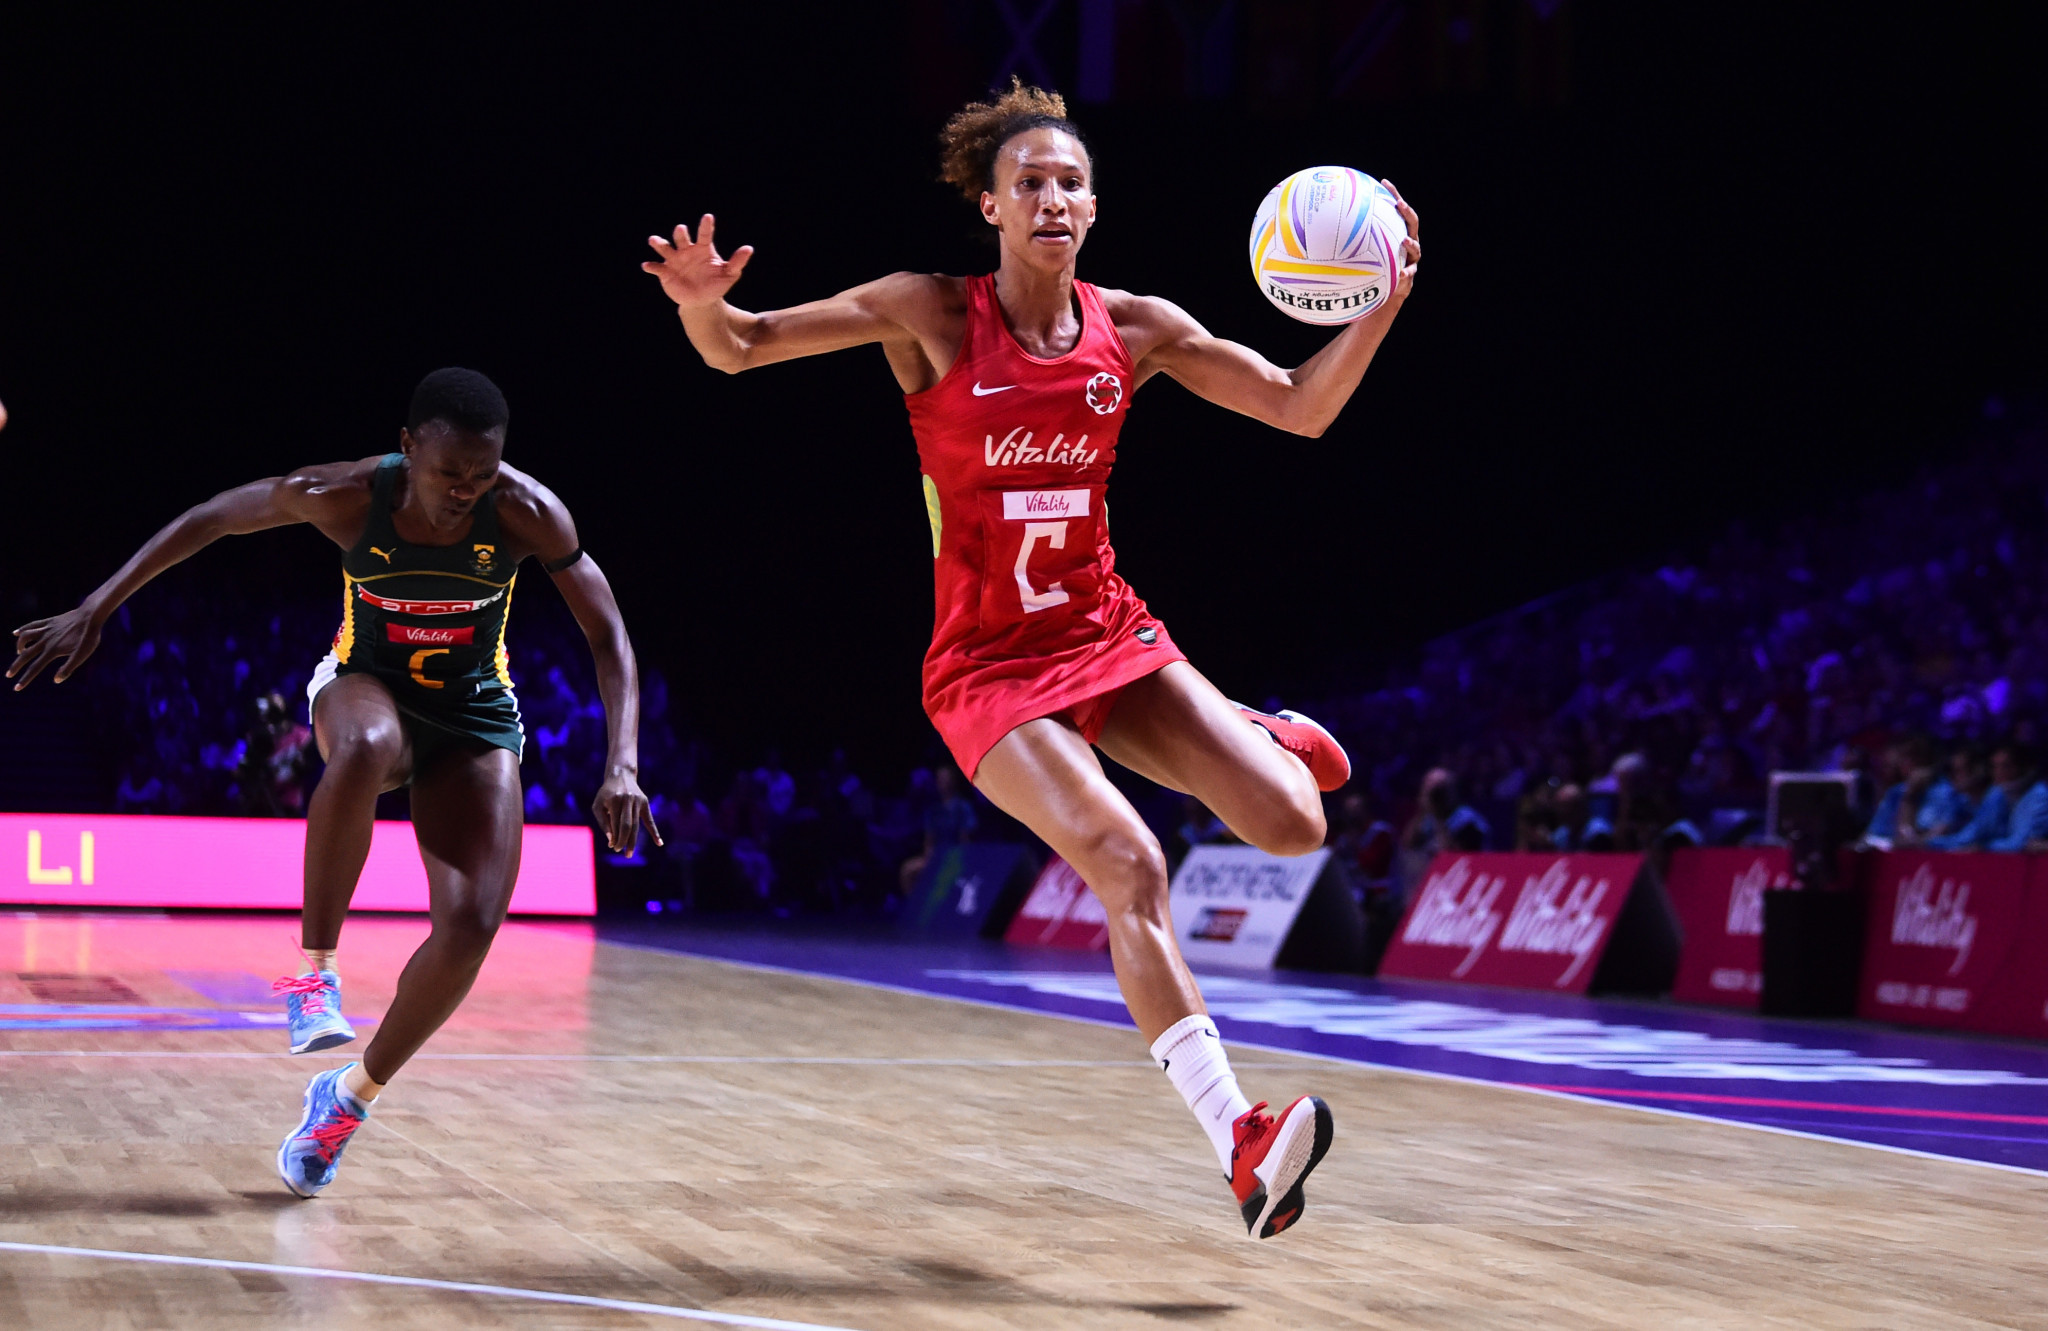 Hosts England secured first place in Group G with a 58-47 win over South Africa ©Getty Images